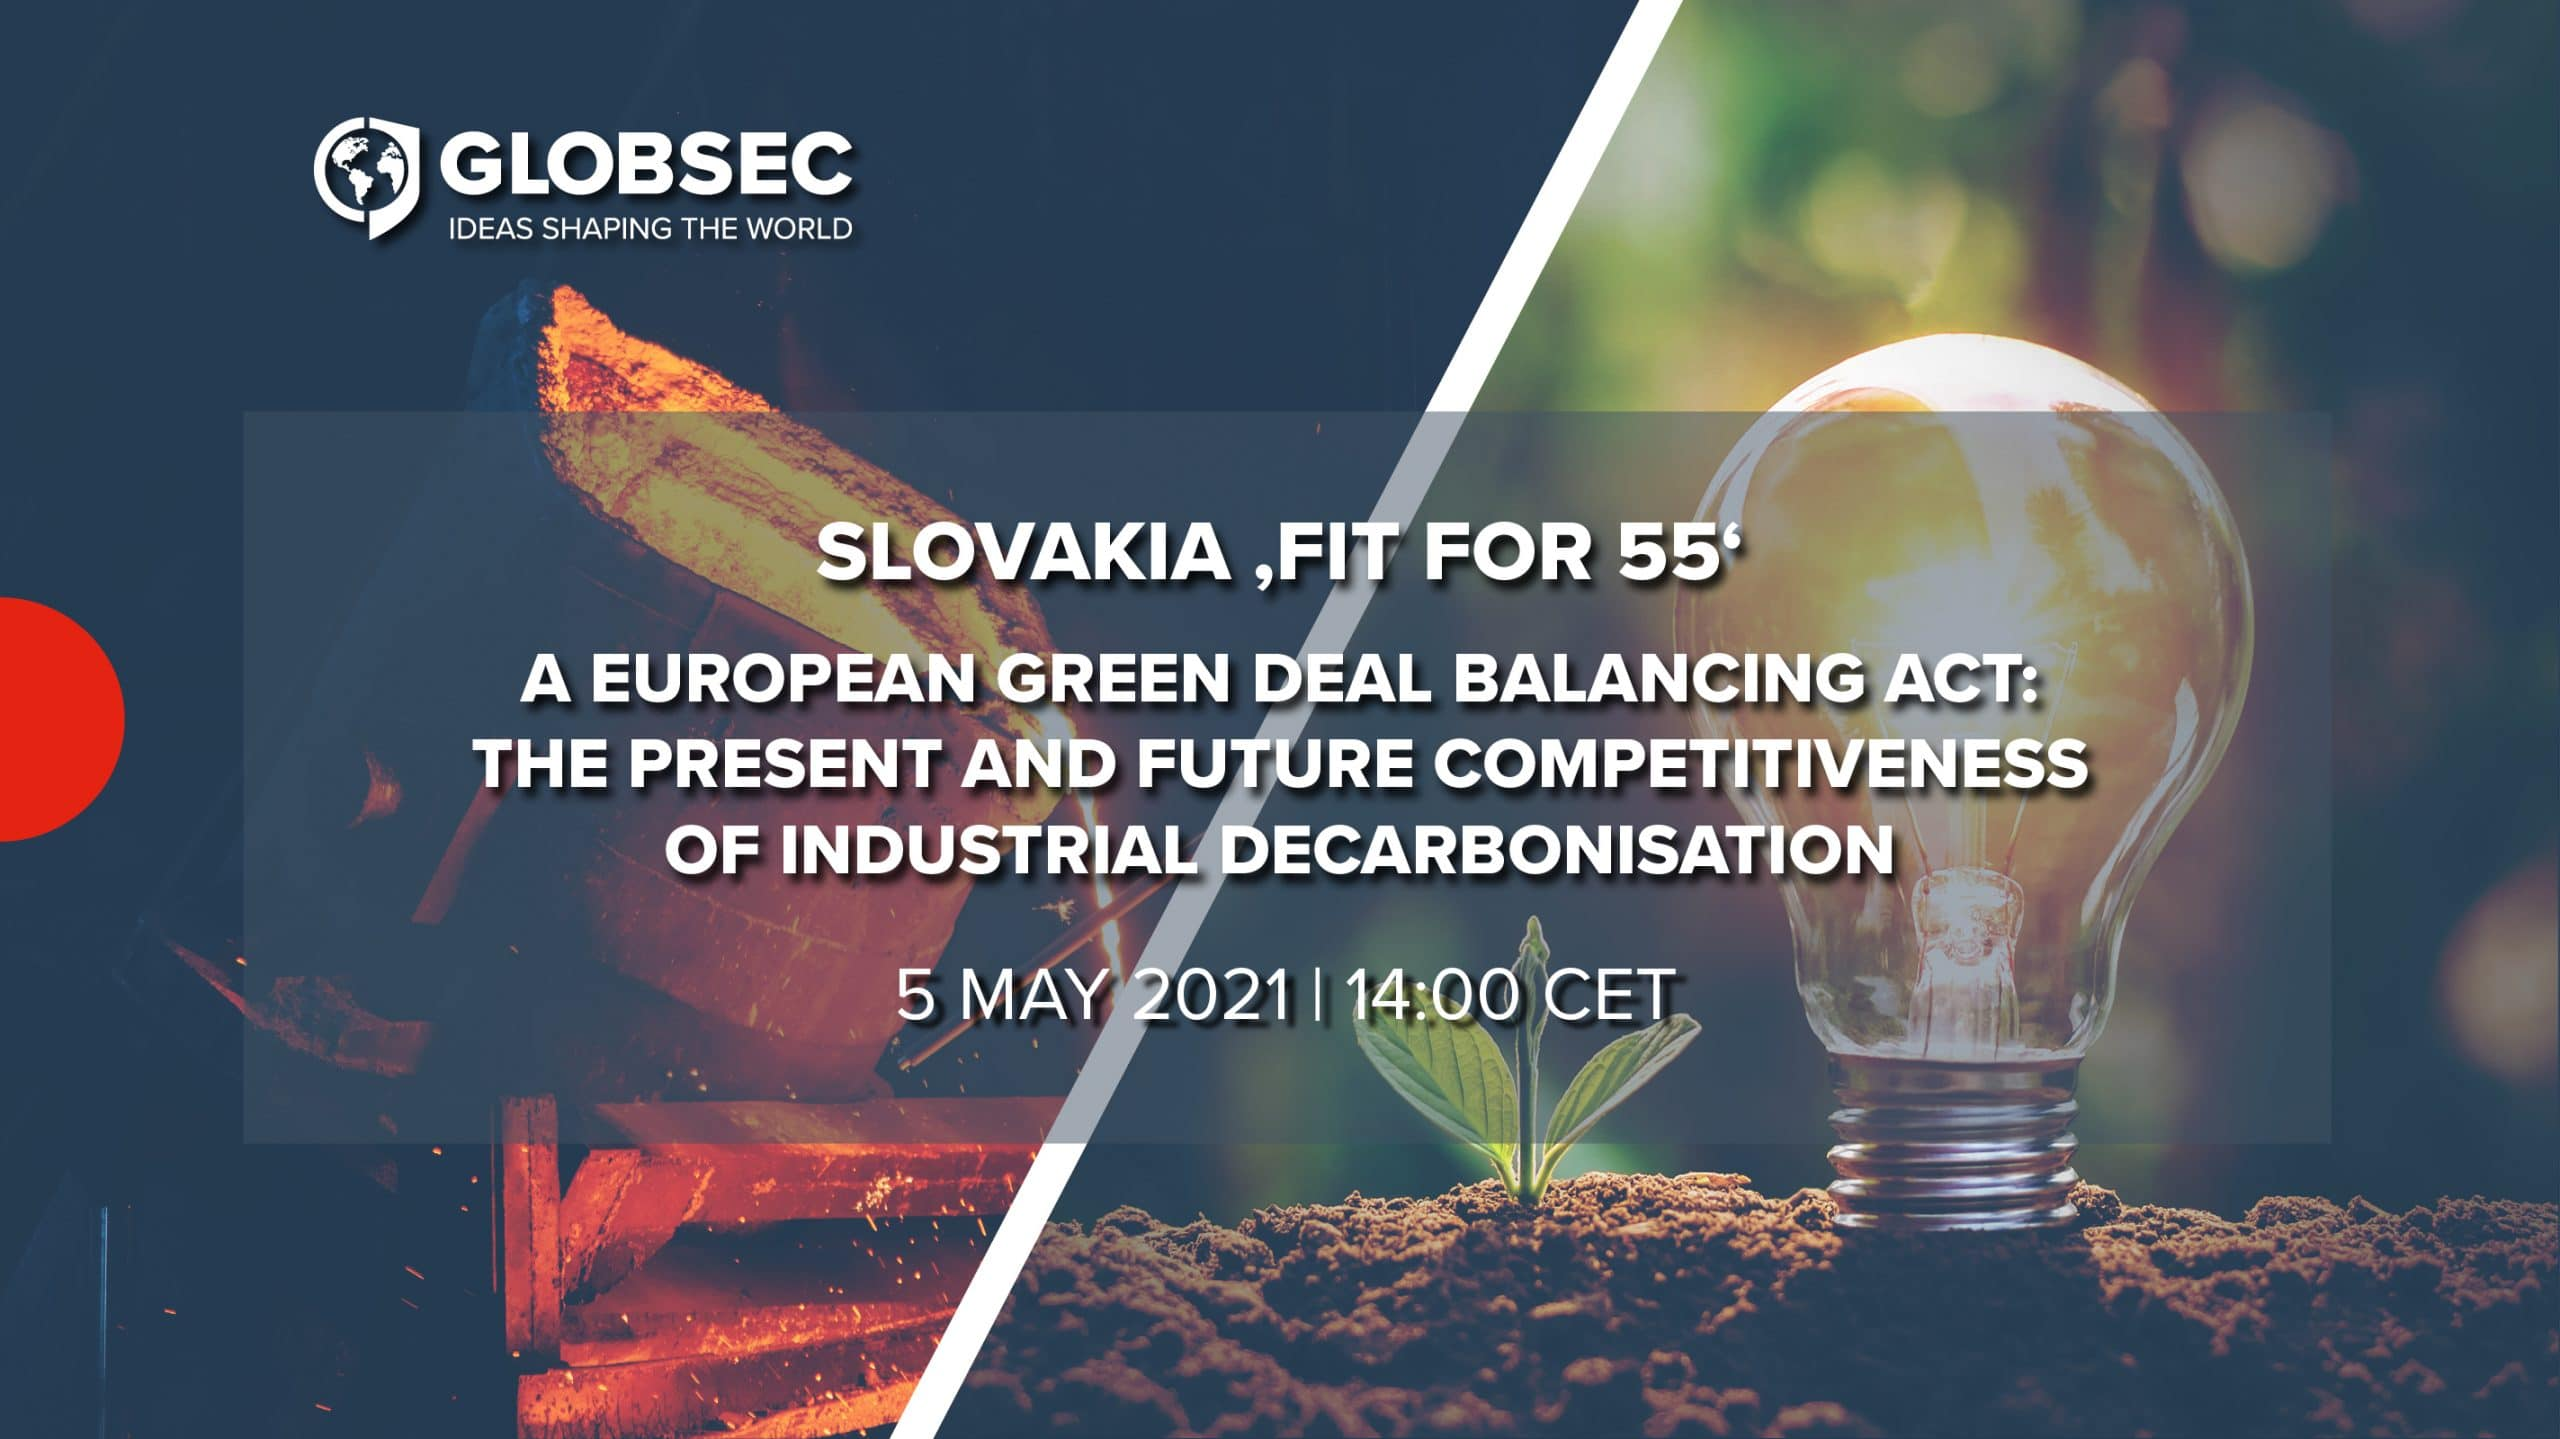 A European Green Deal Balancing Act: The Present and Future Competitiveness of Industrial Decarbonisation